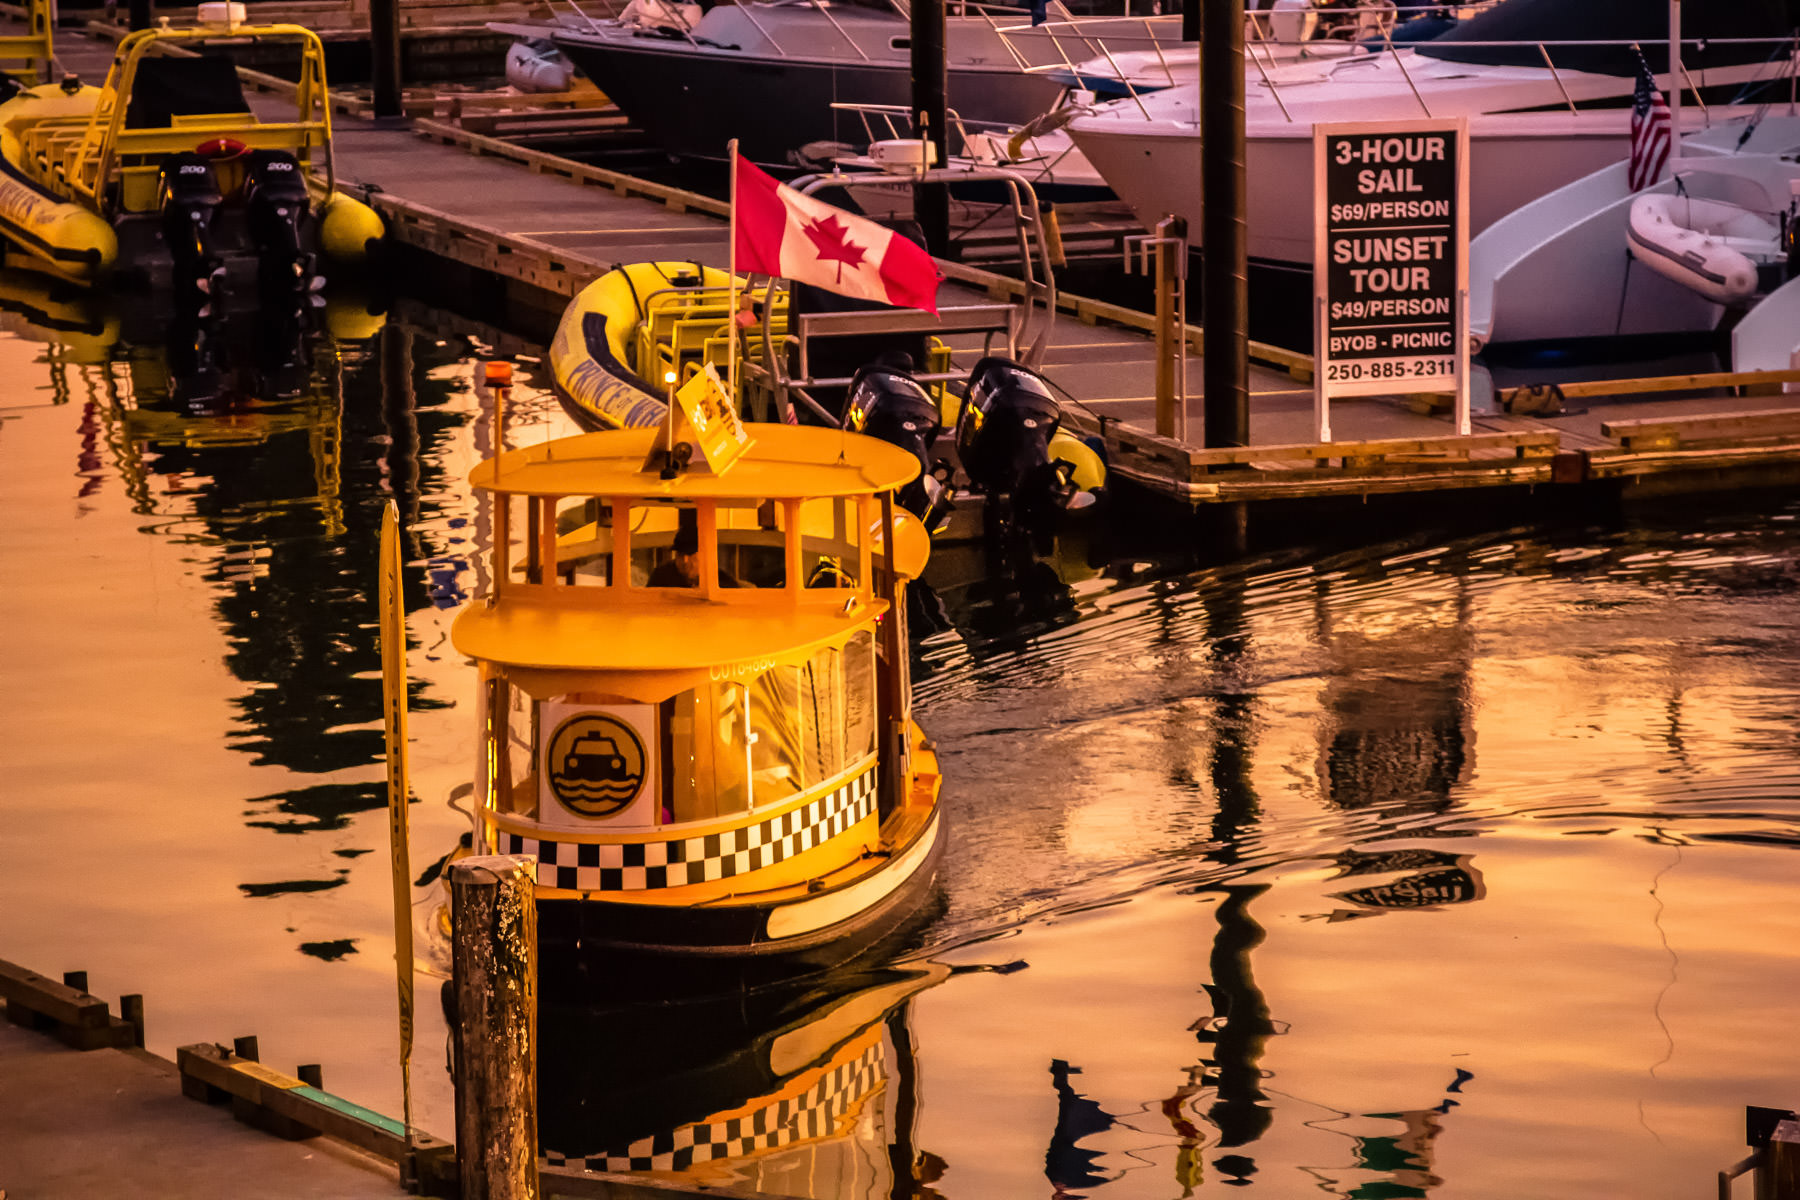 A water taxi glides between piers as the sun sets on Victoria, British Columbia's Inner Harbour.